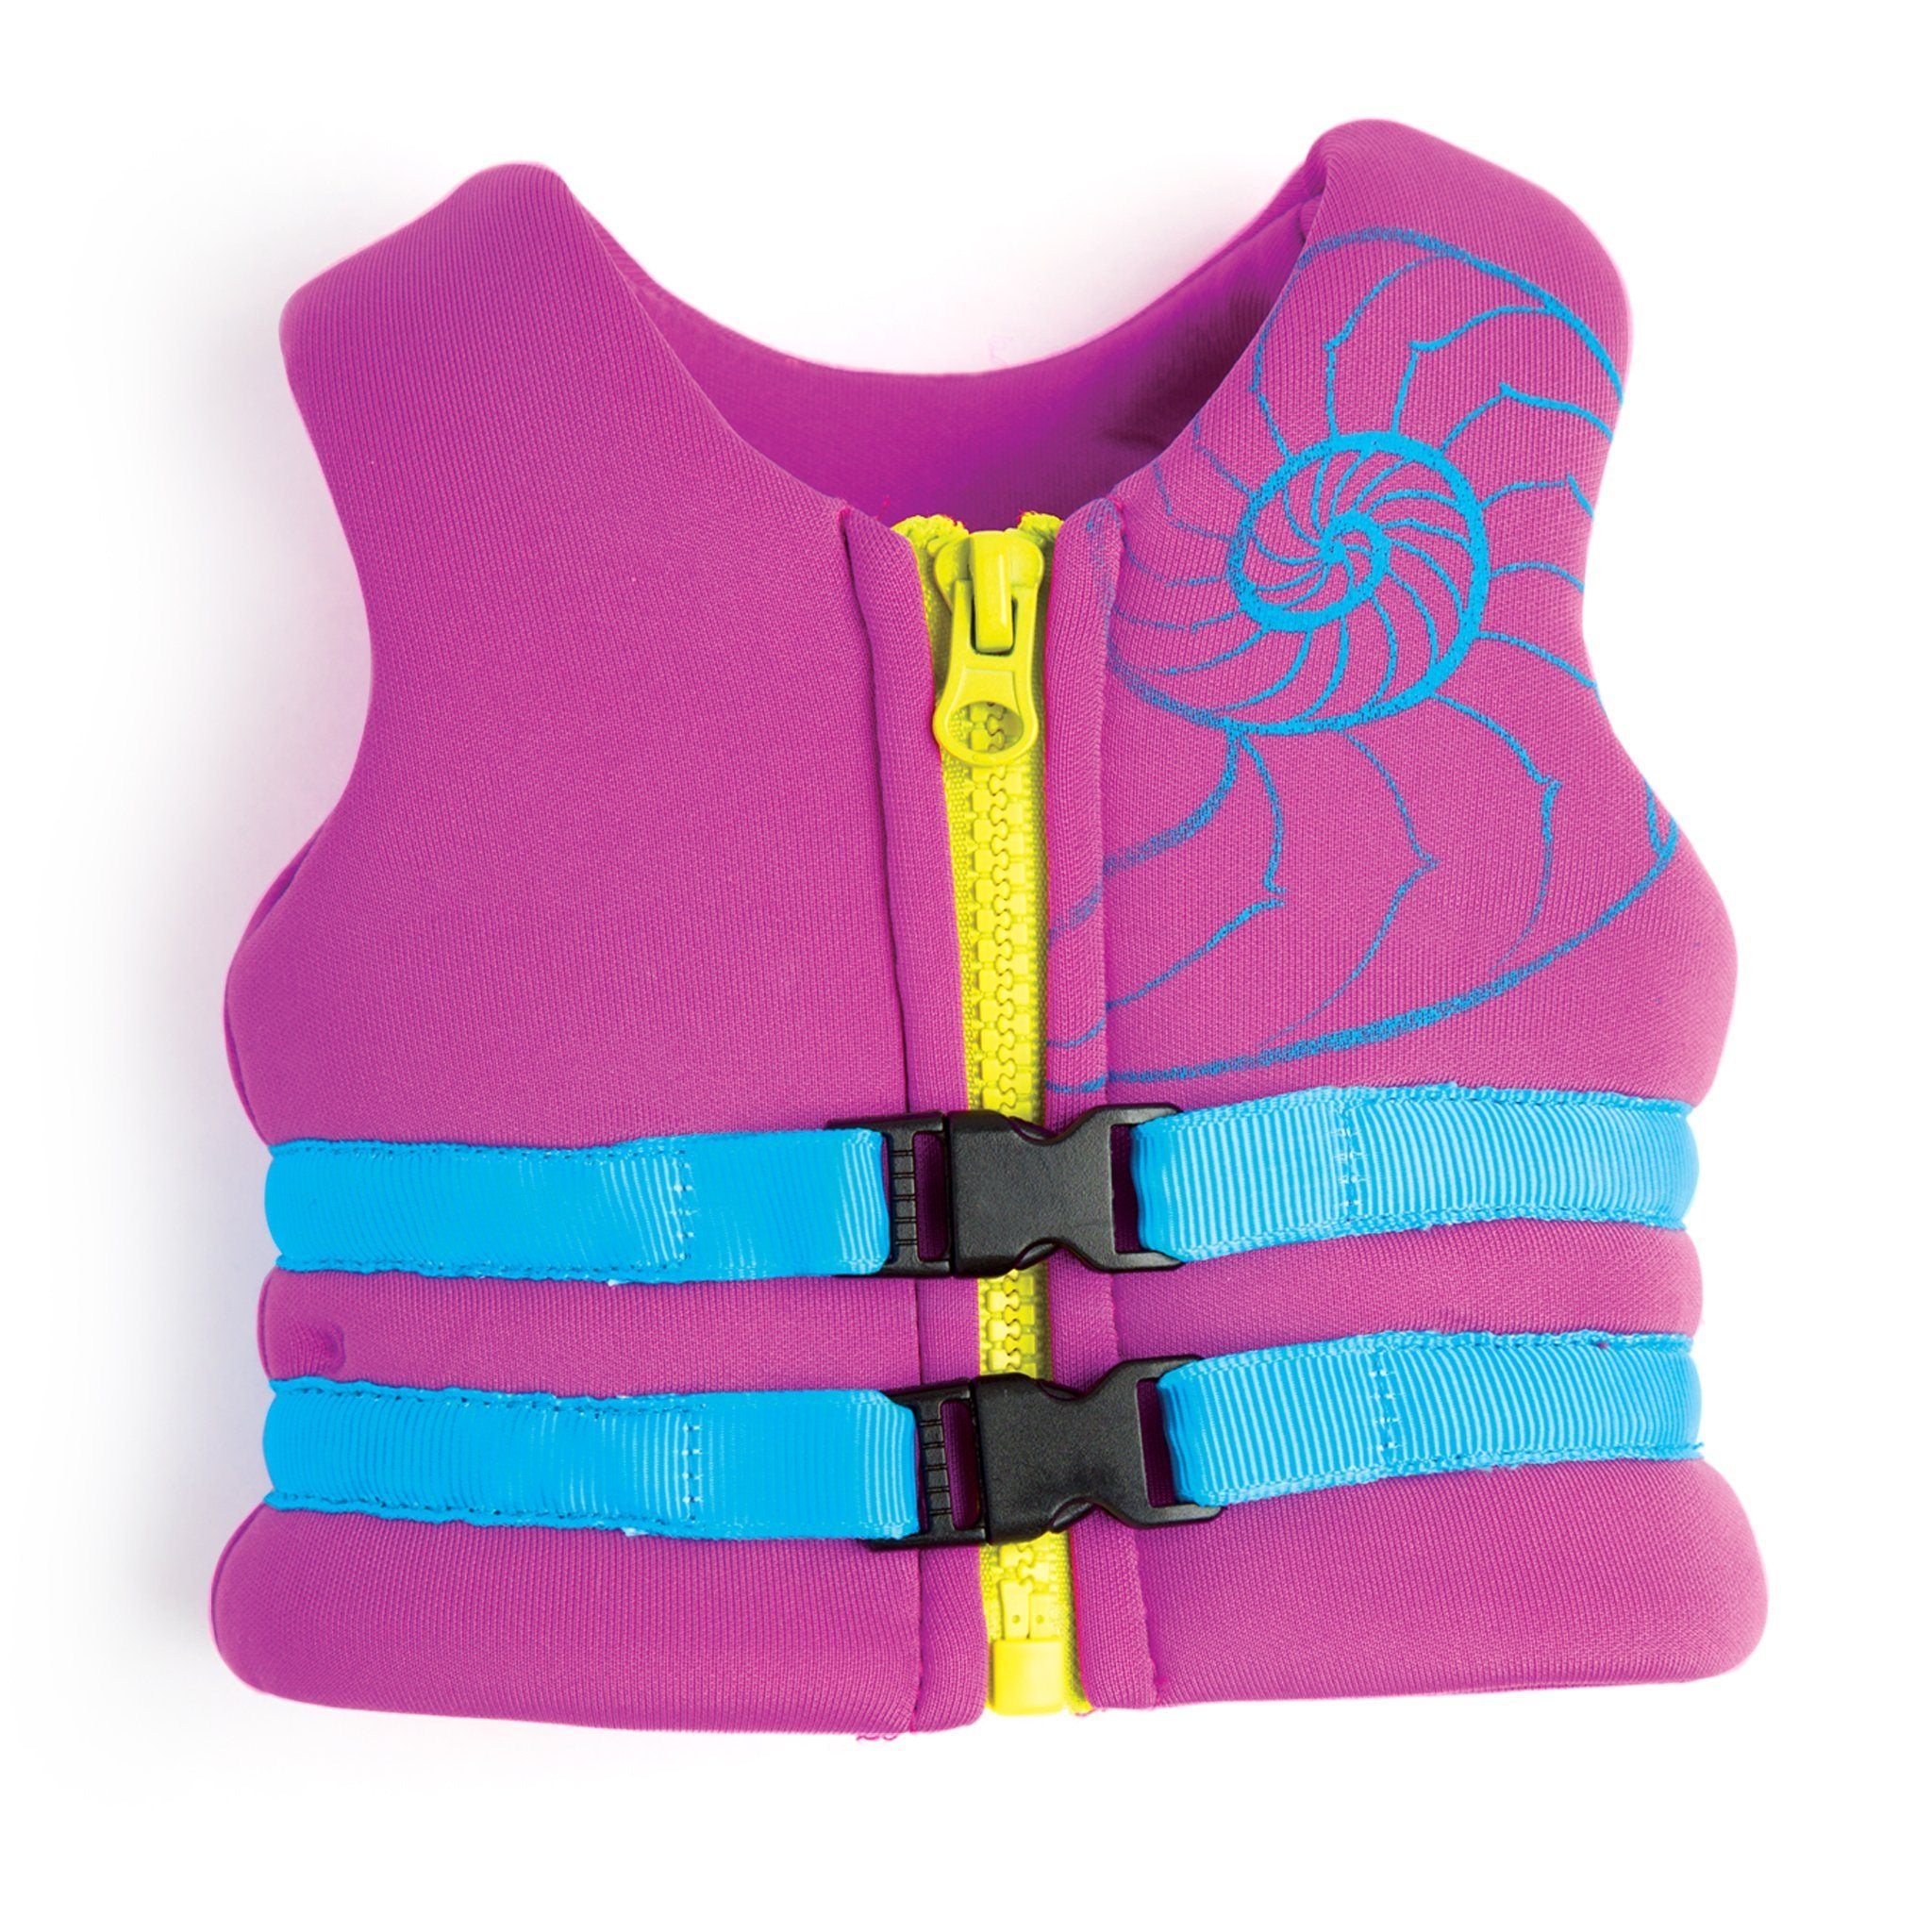 Ride the Tide purple PFD lifejacket with blue buckle and seashell graphic fits all 18 inch dolls